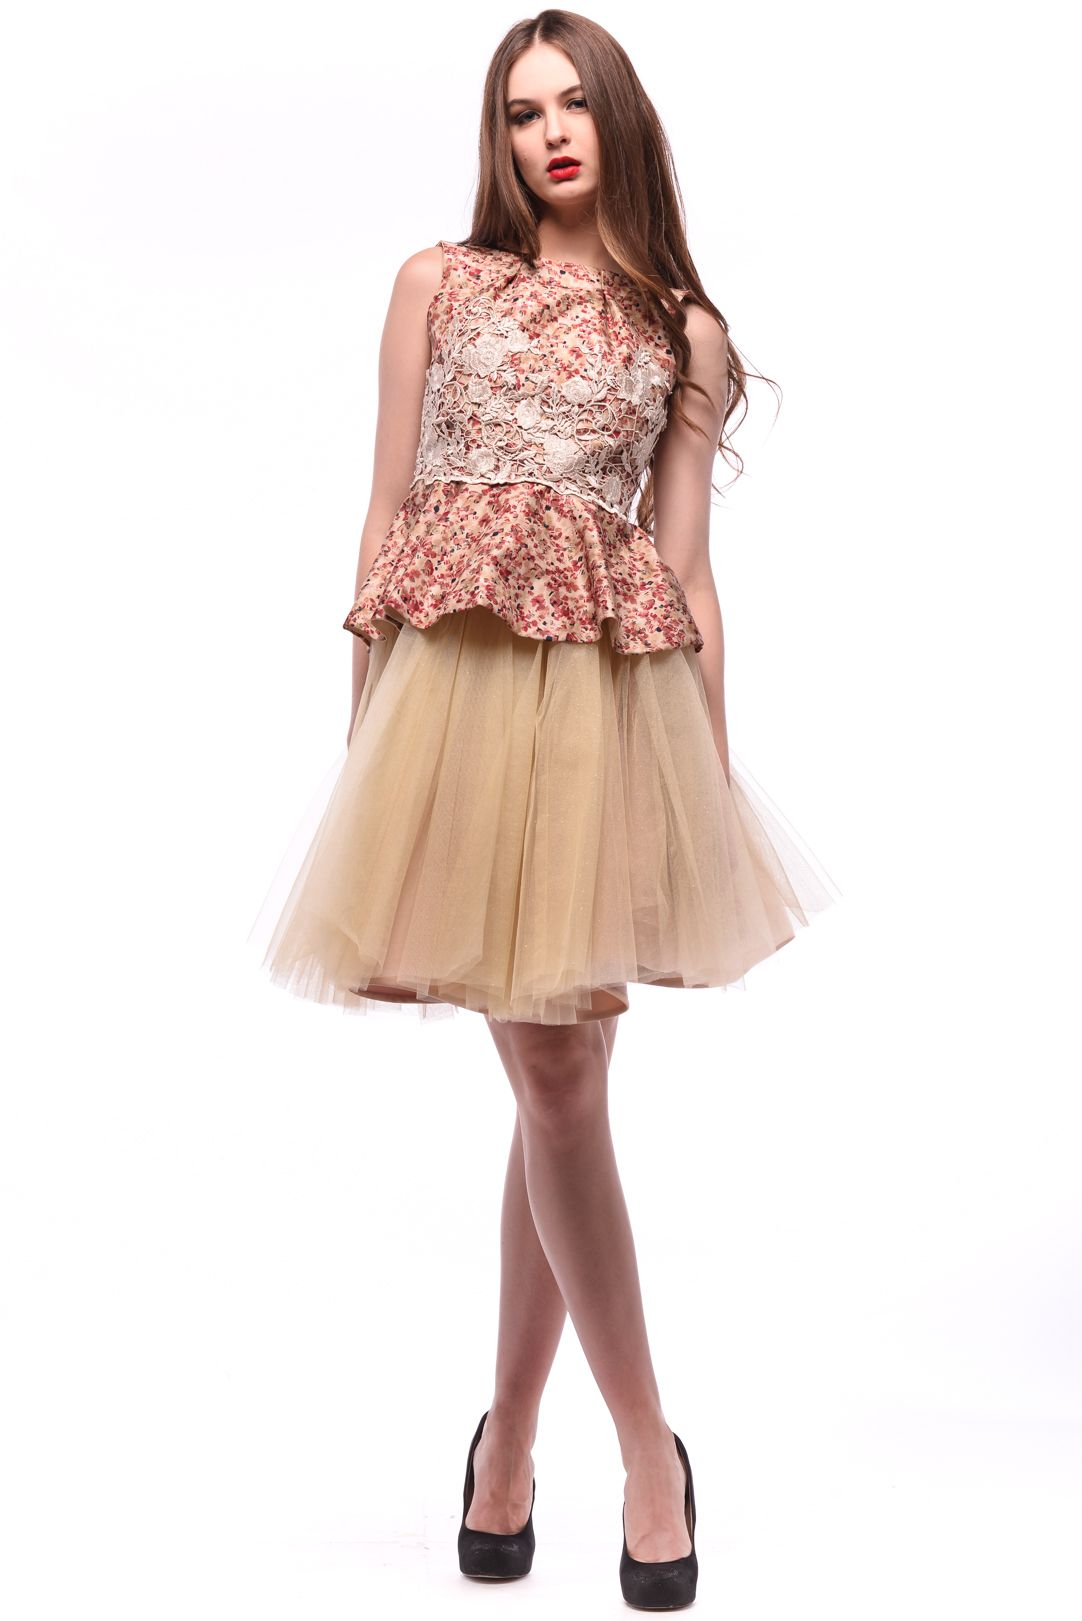 Brownish with Tulle Skirt